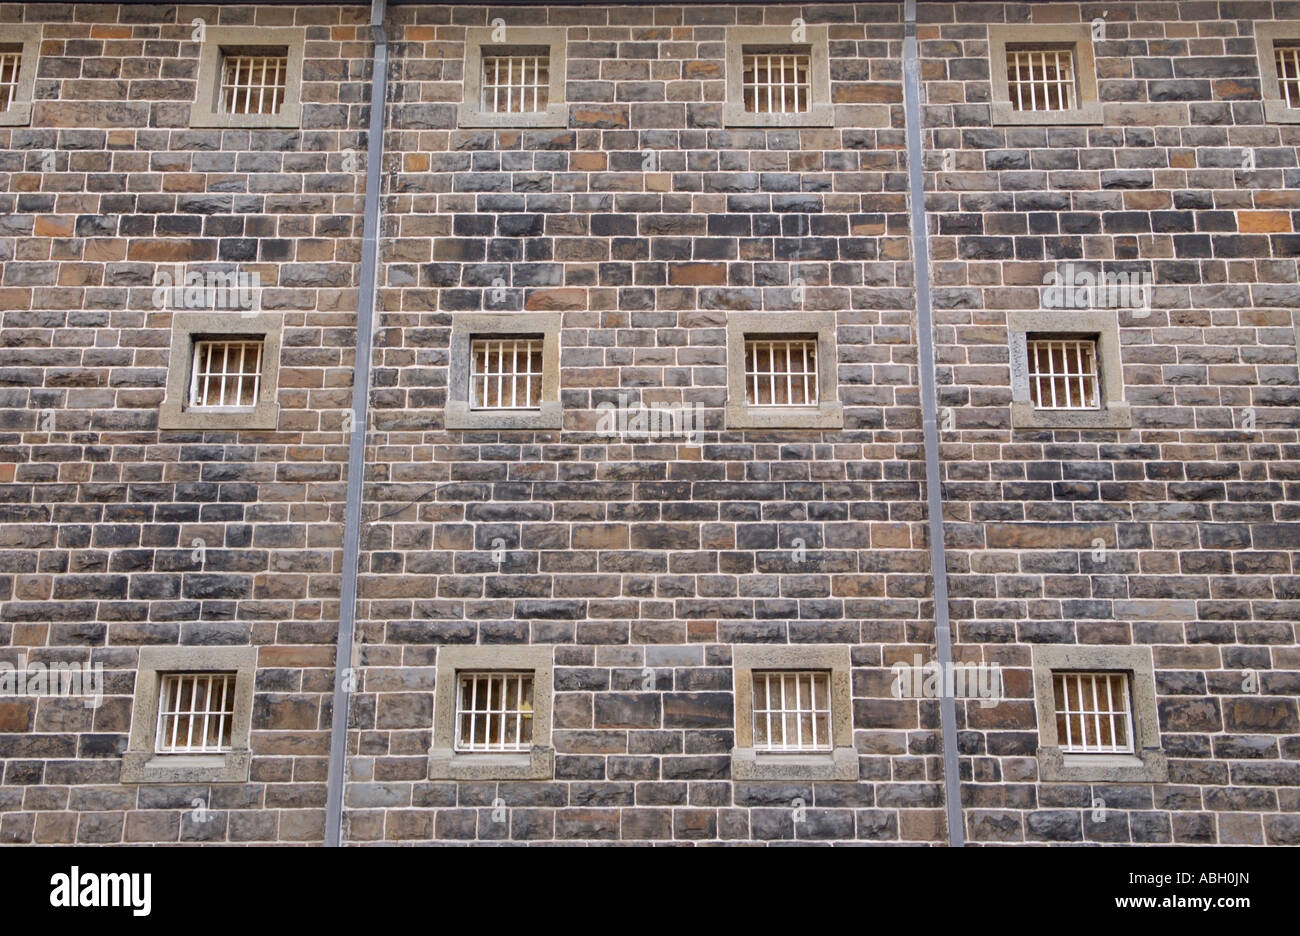 Exterior view of cellblock wing within the walls of Cardiff Prison South Wales UK - Stock Image